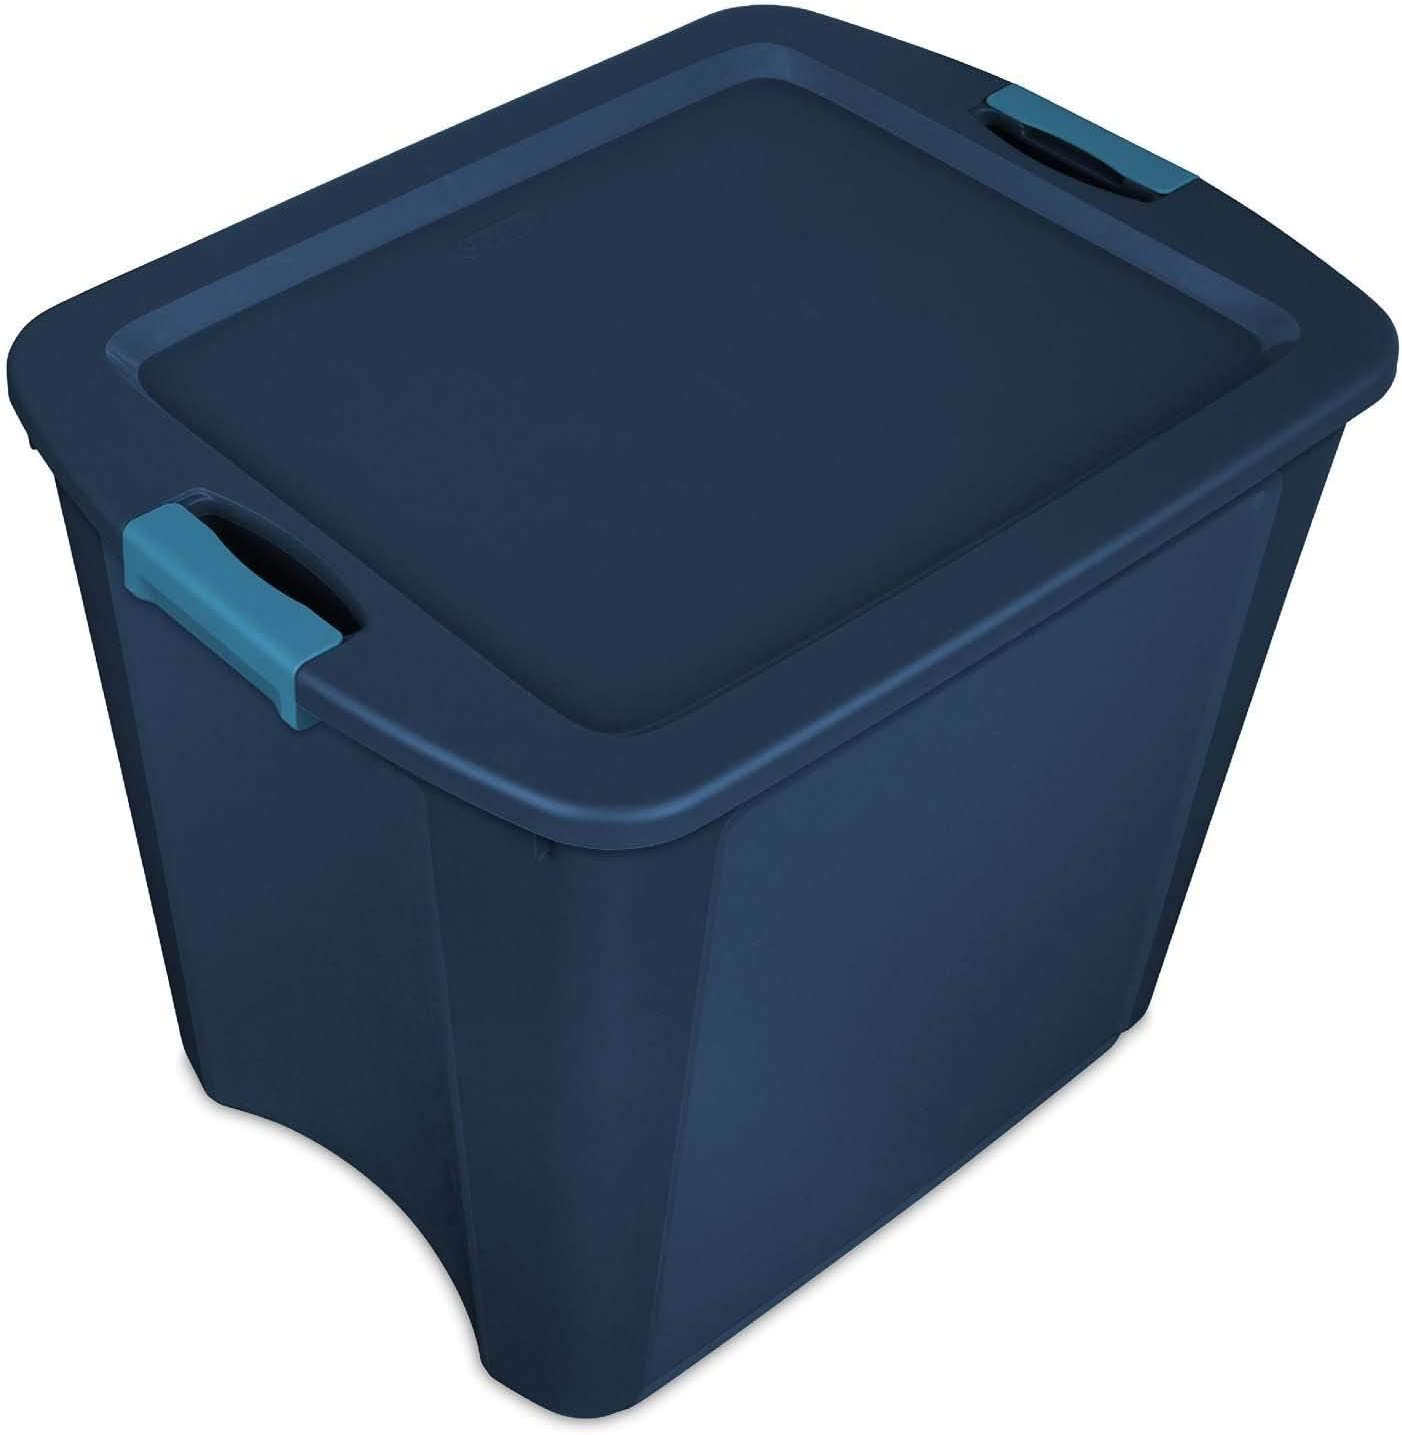 Sterilite 26 Gallon Latch and Carry Storage Tote, True Blue | 14487404